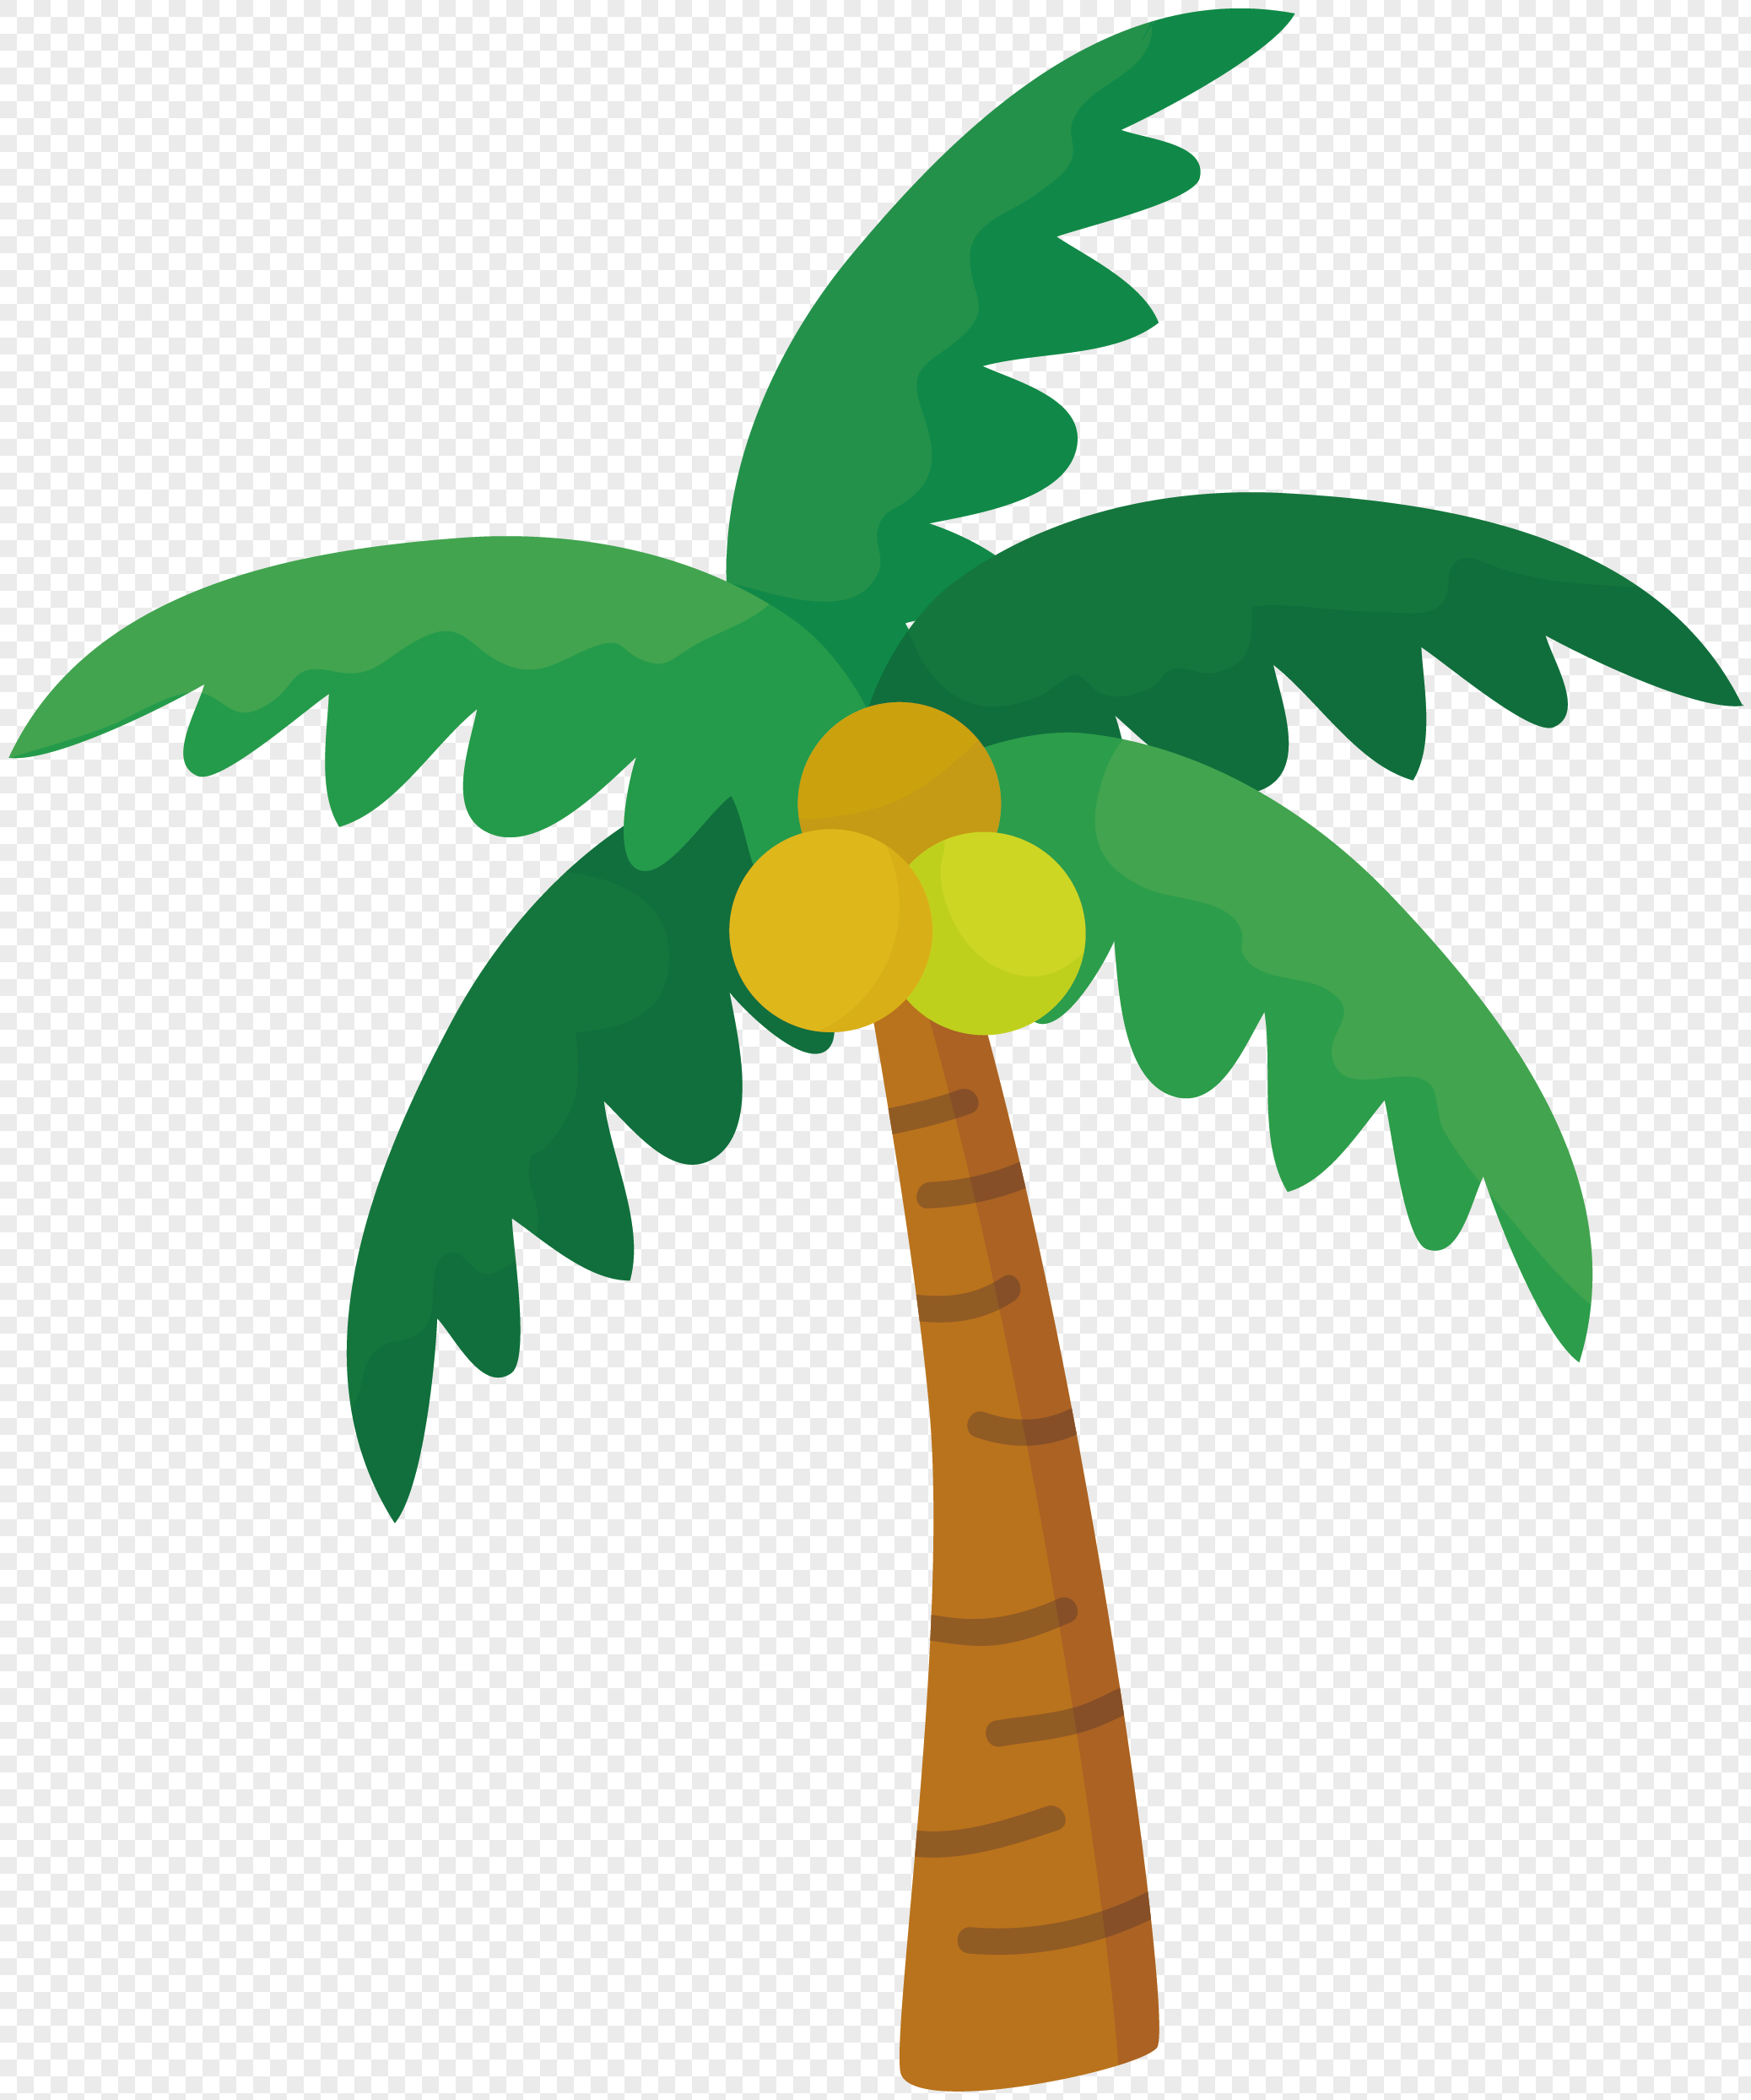 Coconut Tree Vector at GetDrawings | Free download